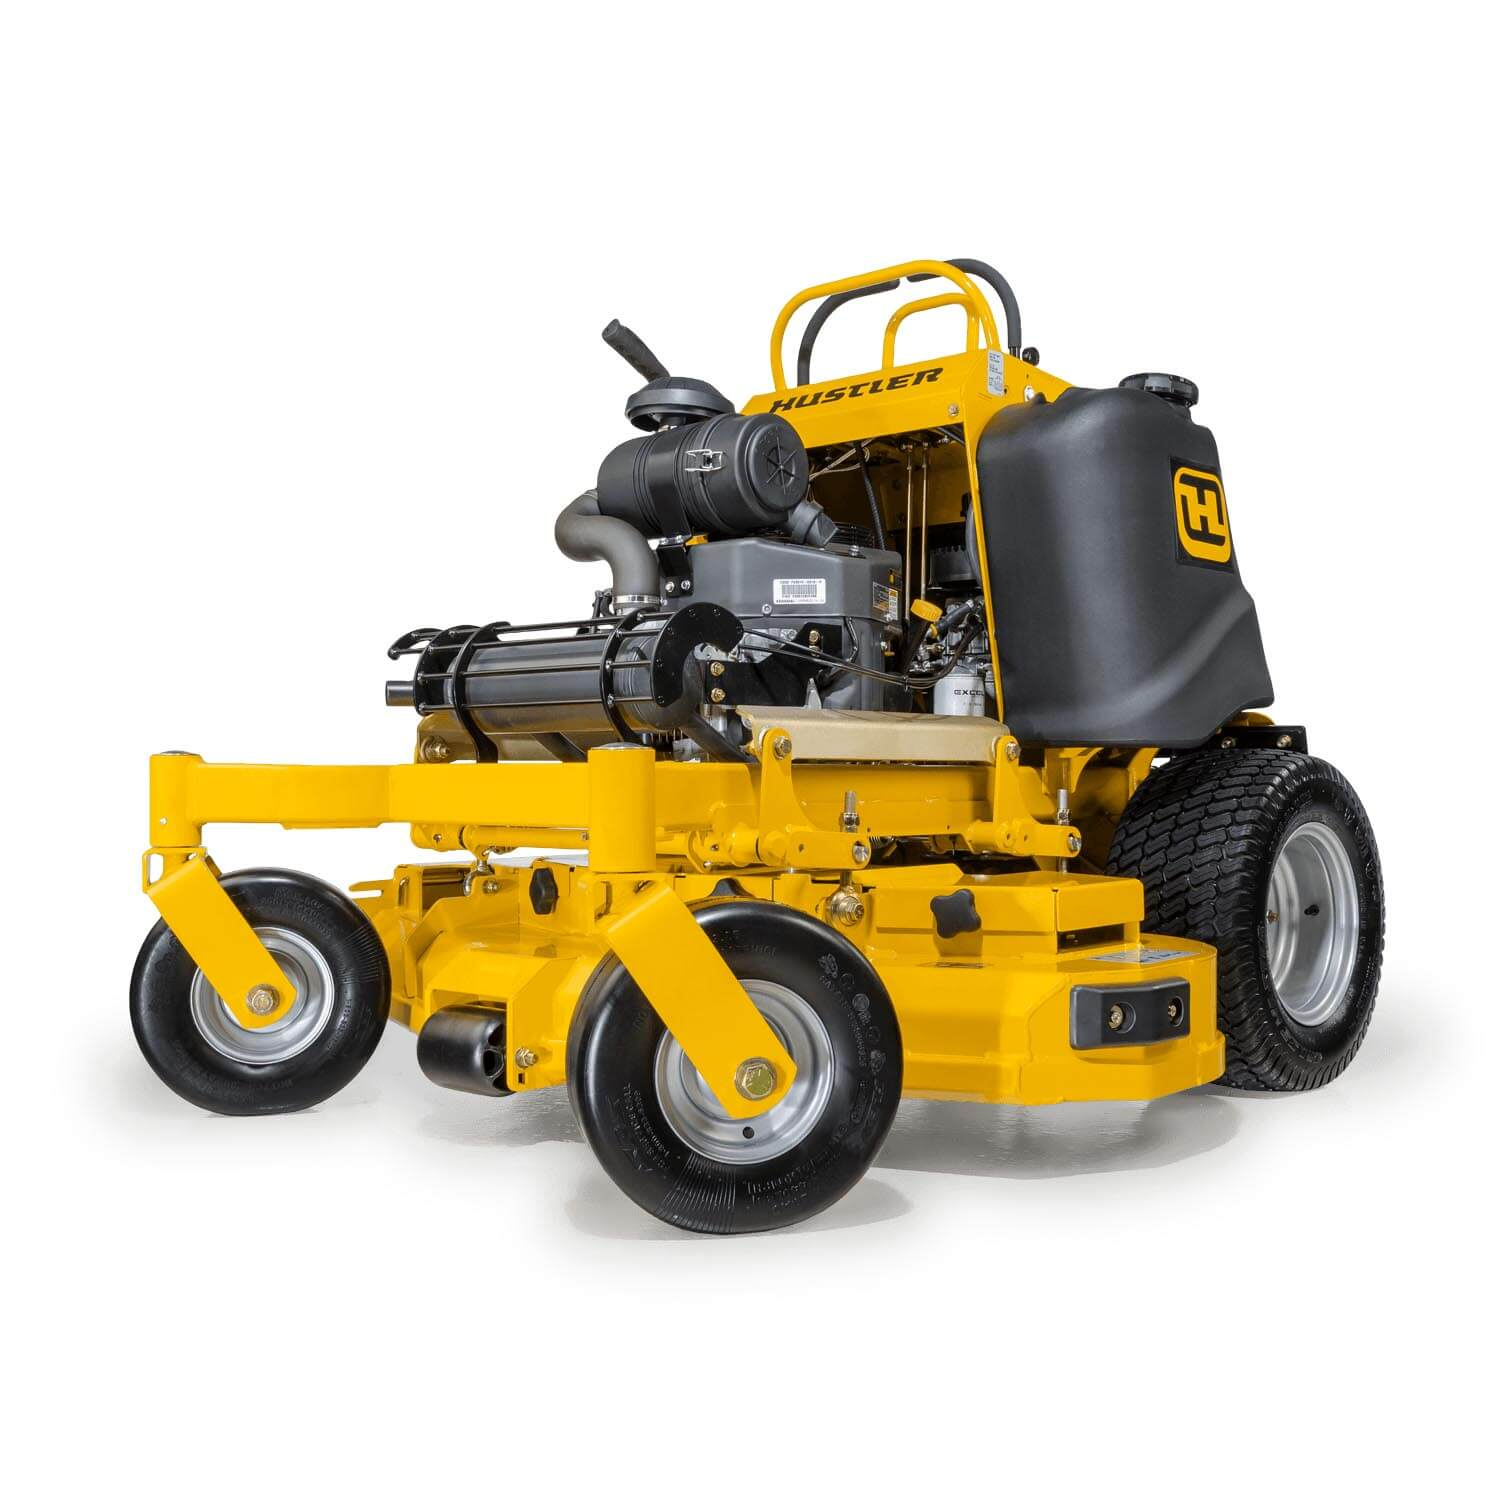 Image of the profile of a yellow stand-on mower showing the trim edge of the deck